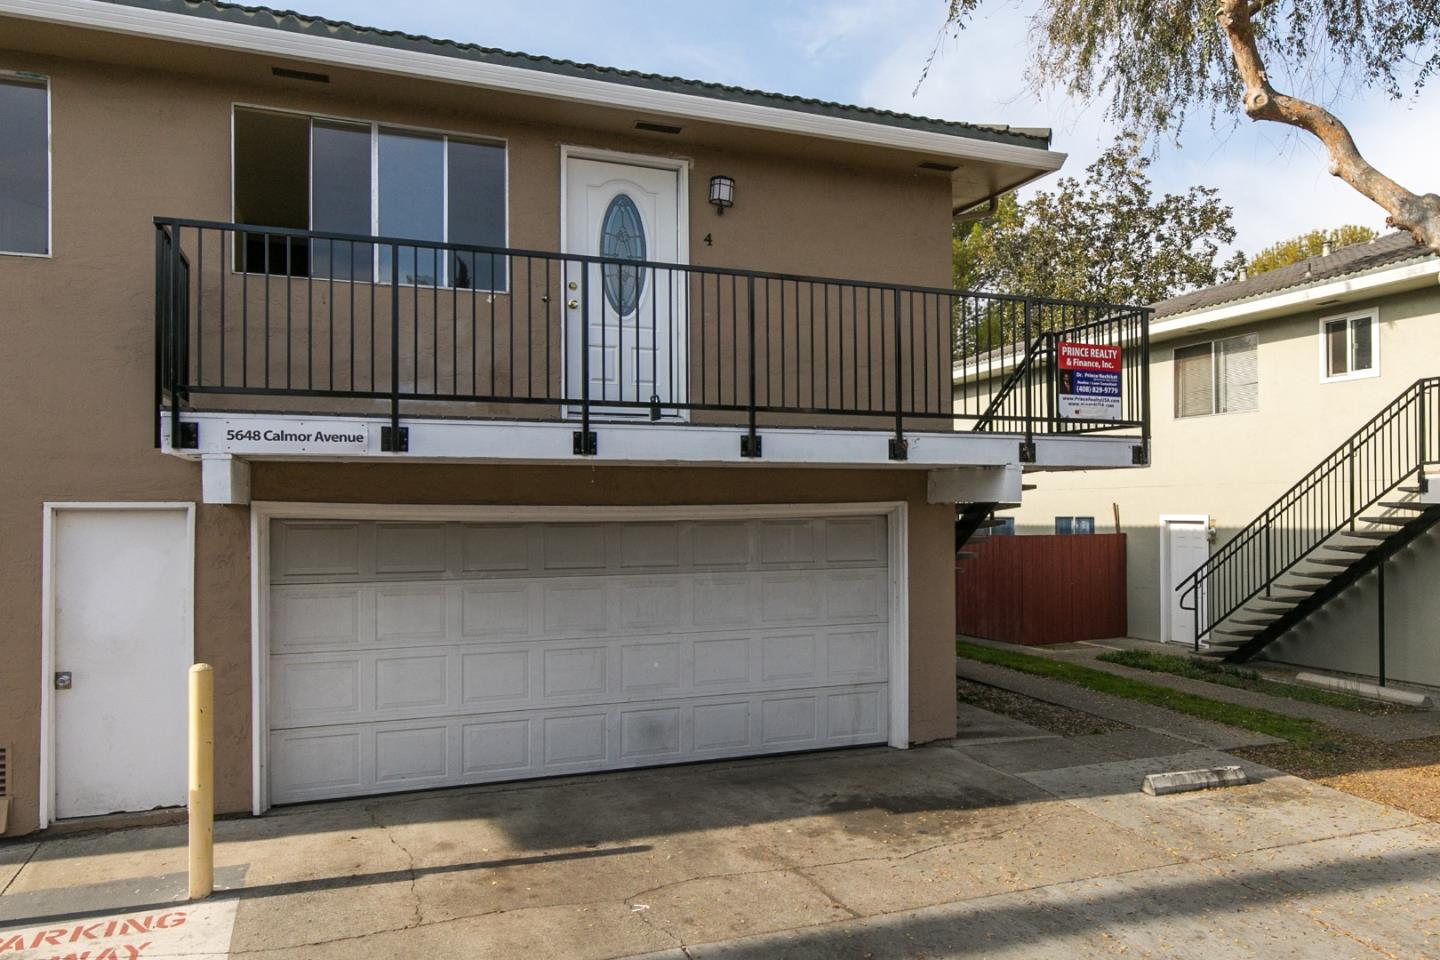 Come and see this 2 Bed 1 bath unit. ! All bedrooms, hall and kitchen on the same level with shared 2 car Garage &  2 car Driveway. Easy access to Free way 85 and 87. Walking distance to VTA, Cahalan Park, Oakridge Mall, various restaurants & shopping centers. Community pool, newer Centralized Heating. Inside garage additional storage space available. Shared coin-op laundry room. Good community. Laminated Floor in whole area and Paneled wall in the living room, Great Location! Please DO NOT enter the Property without listing office confirming Fully executed PEAD Form. All parties including Realtor should complete the PEAD form prior to confirming the showing appointment. Everyone should follow all government COVID regulations.